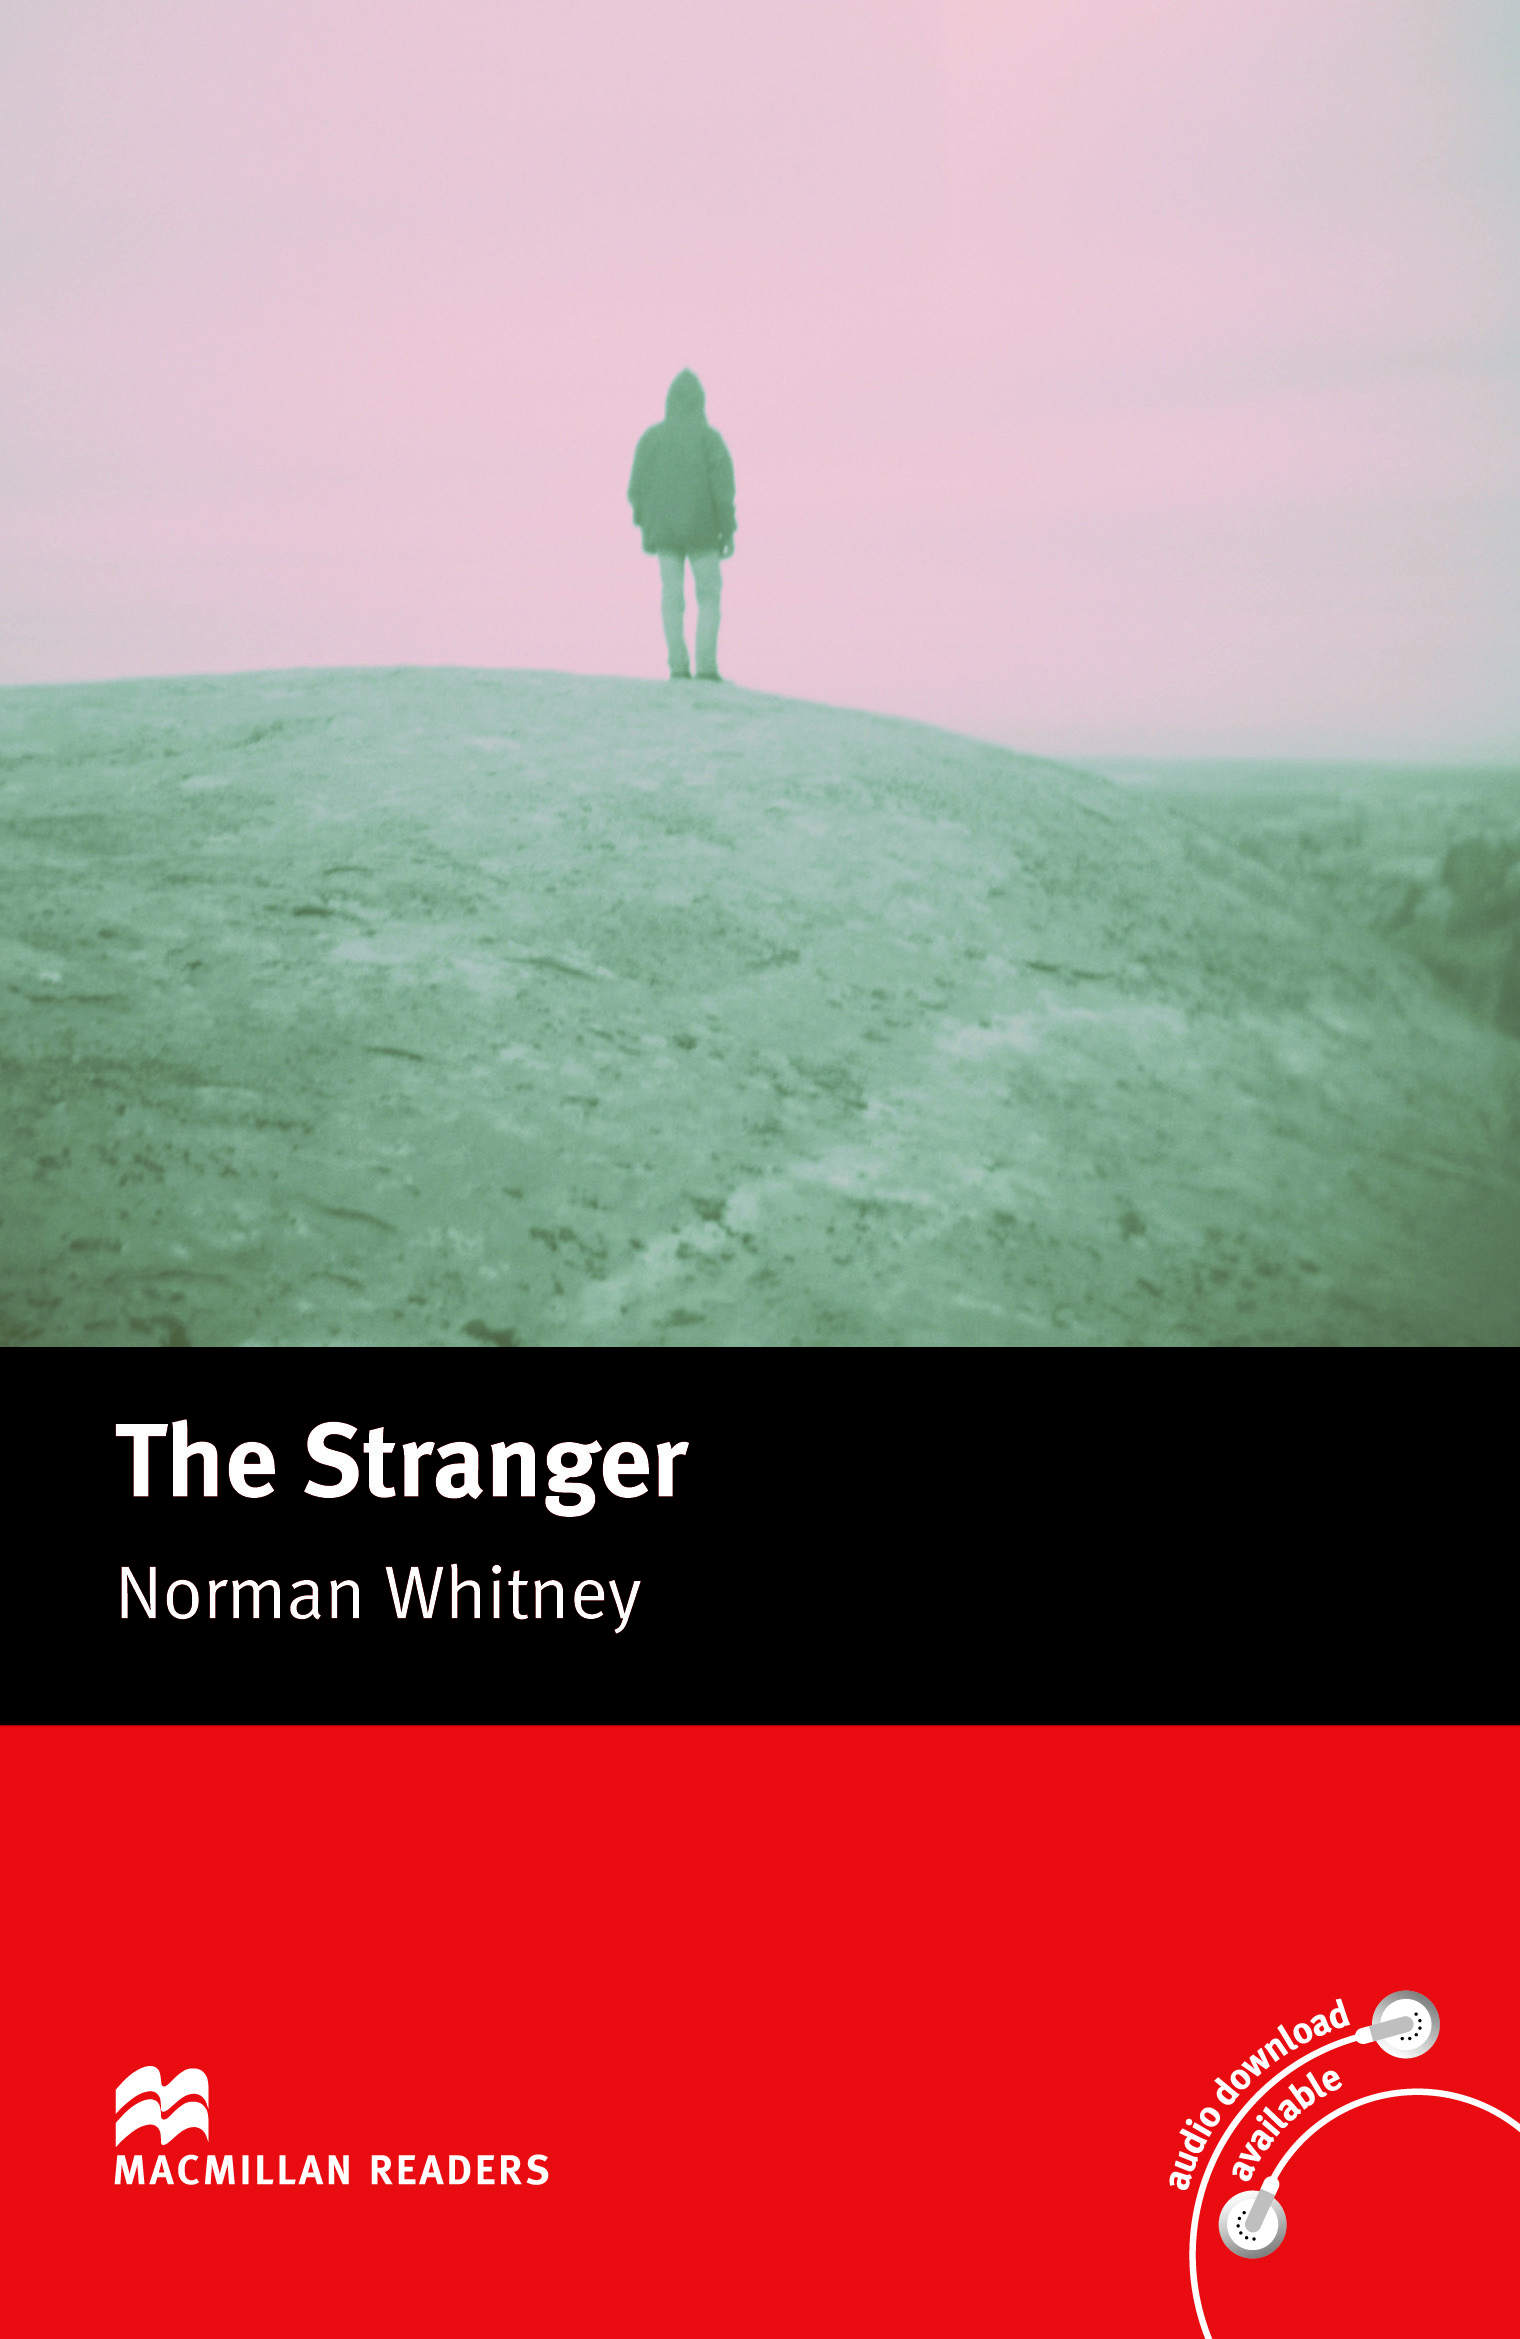 Macmillan Readers: The Stranger without CD